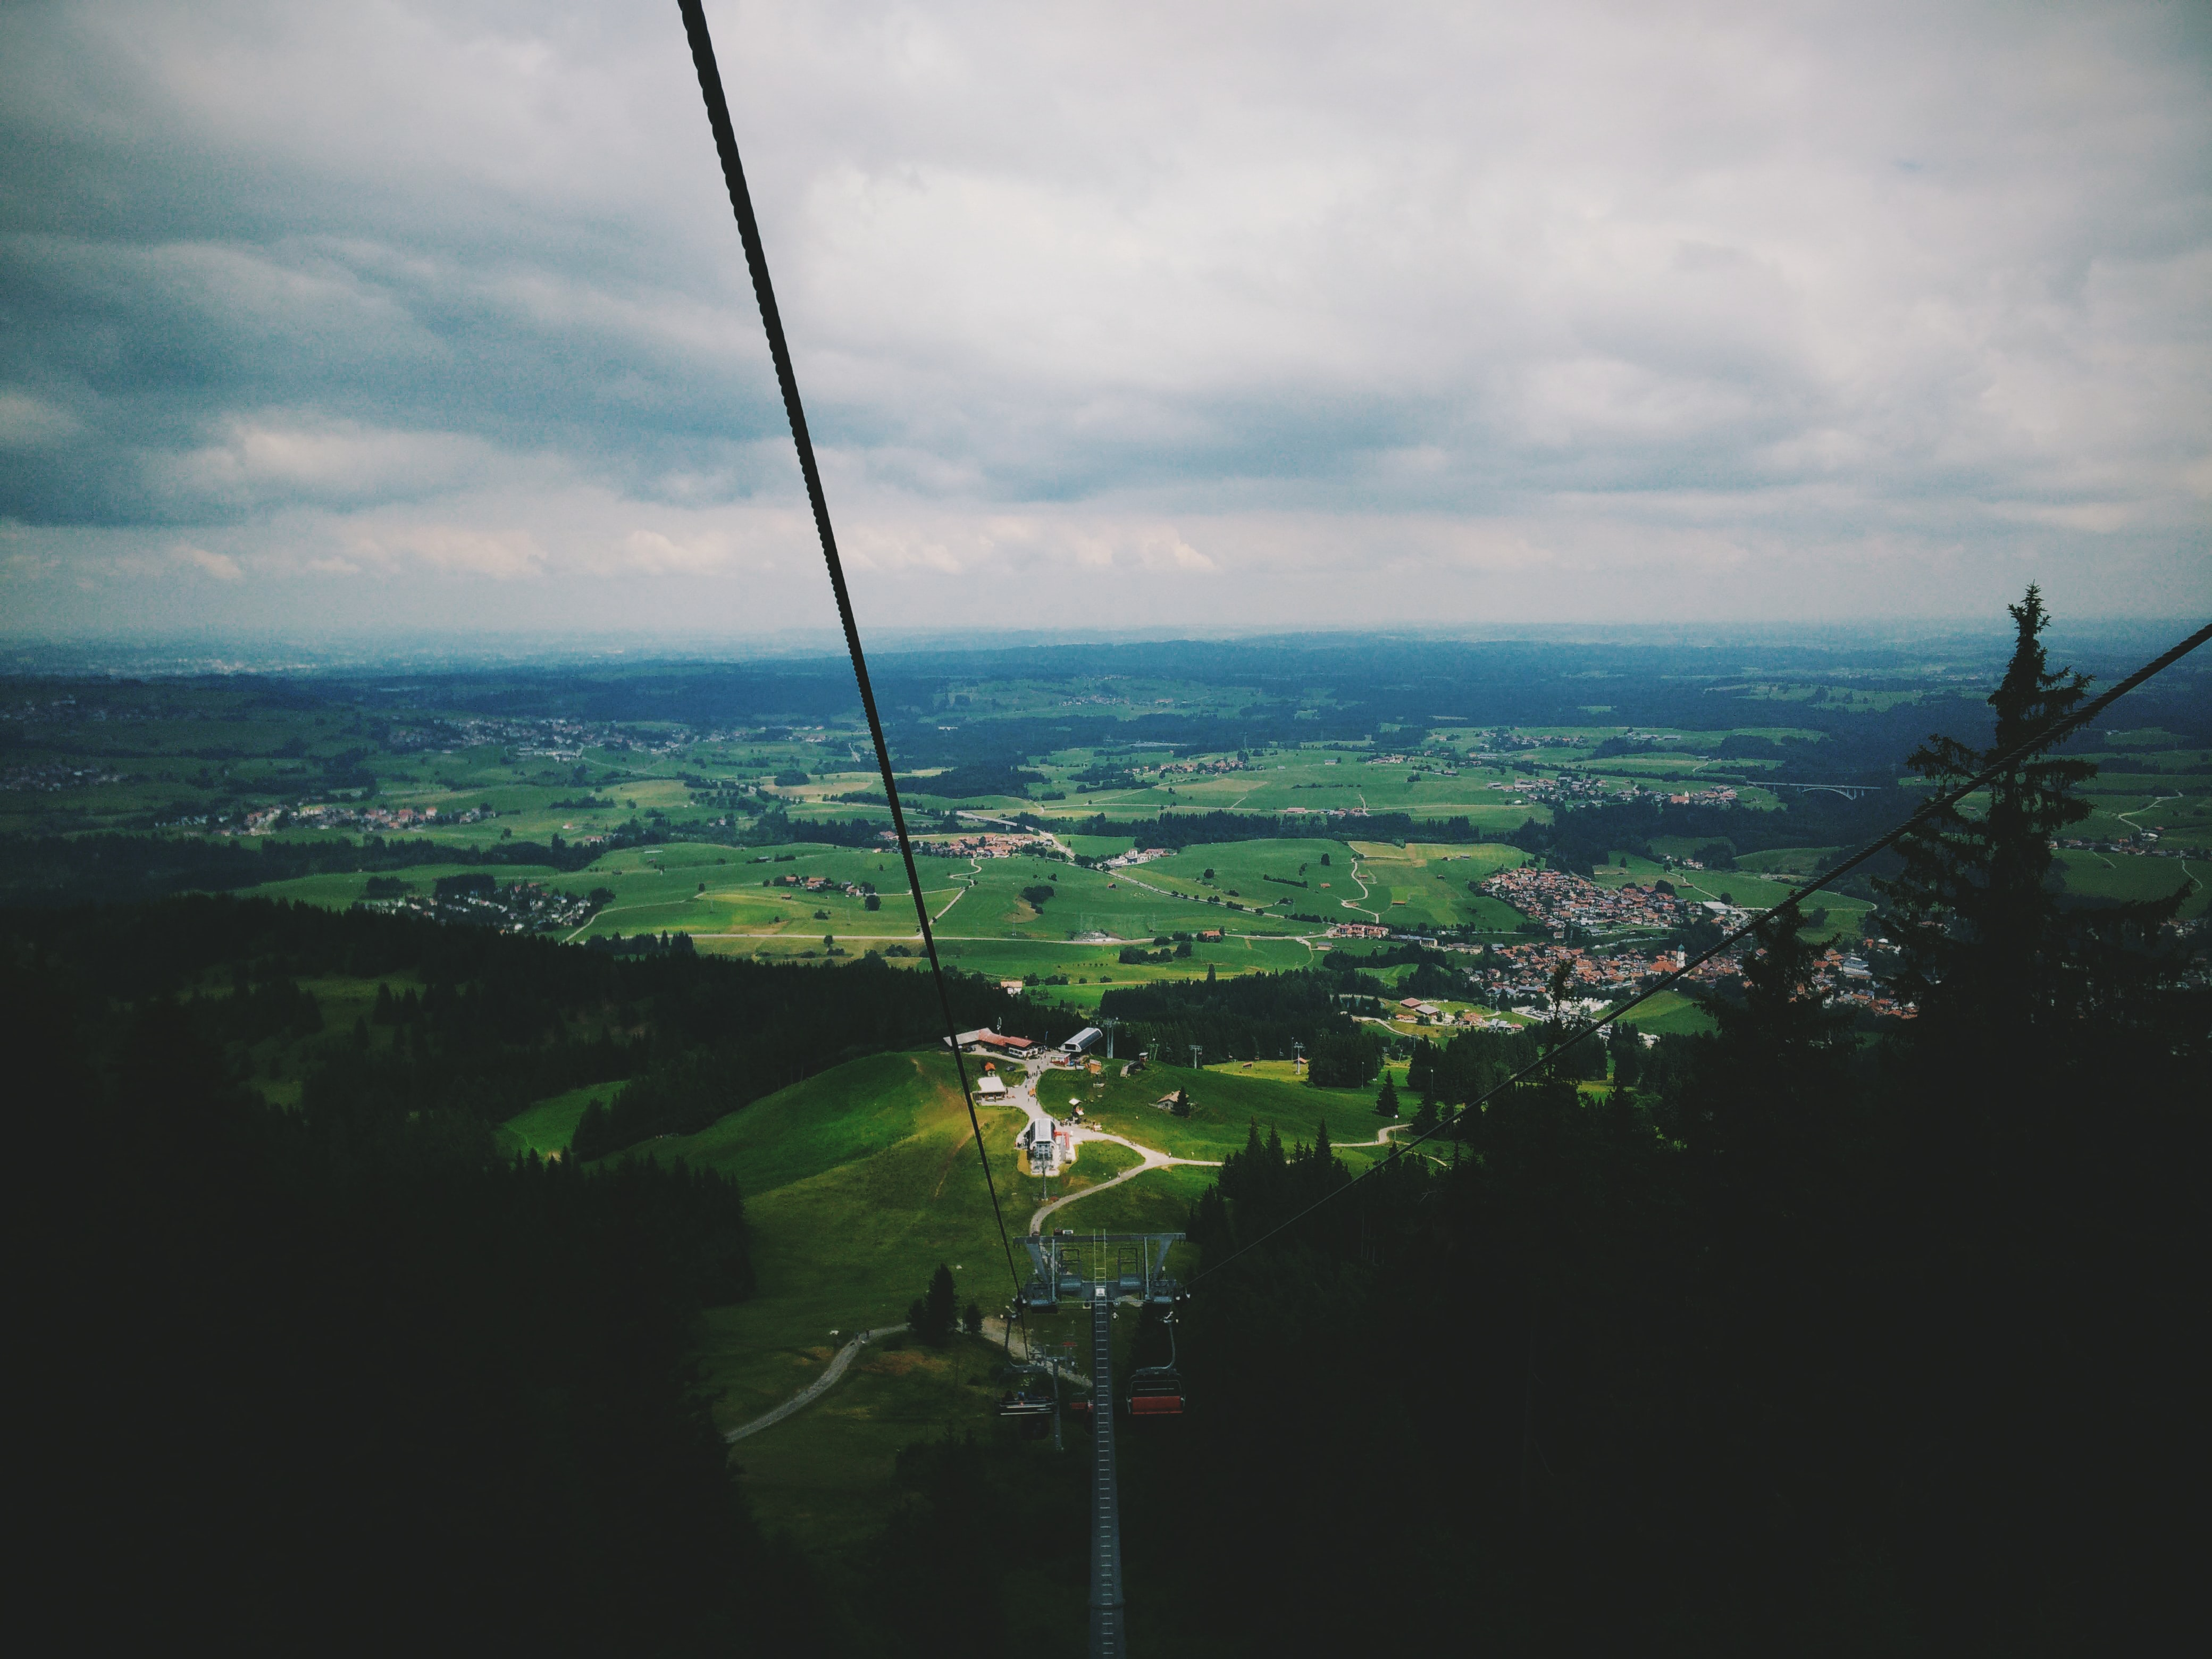 View from a chairlift on green countryside below